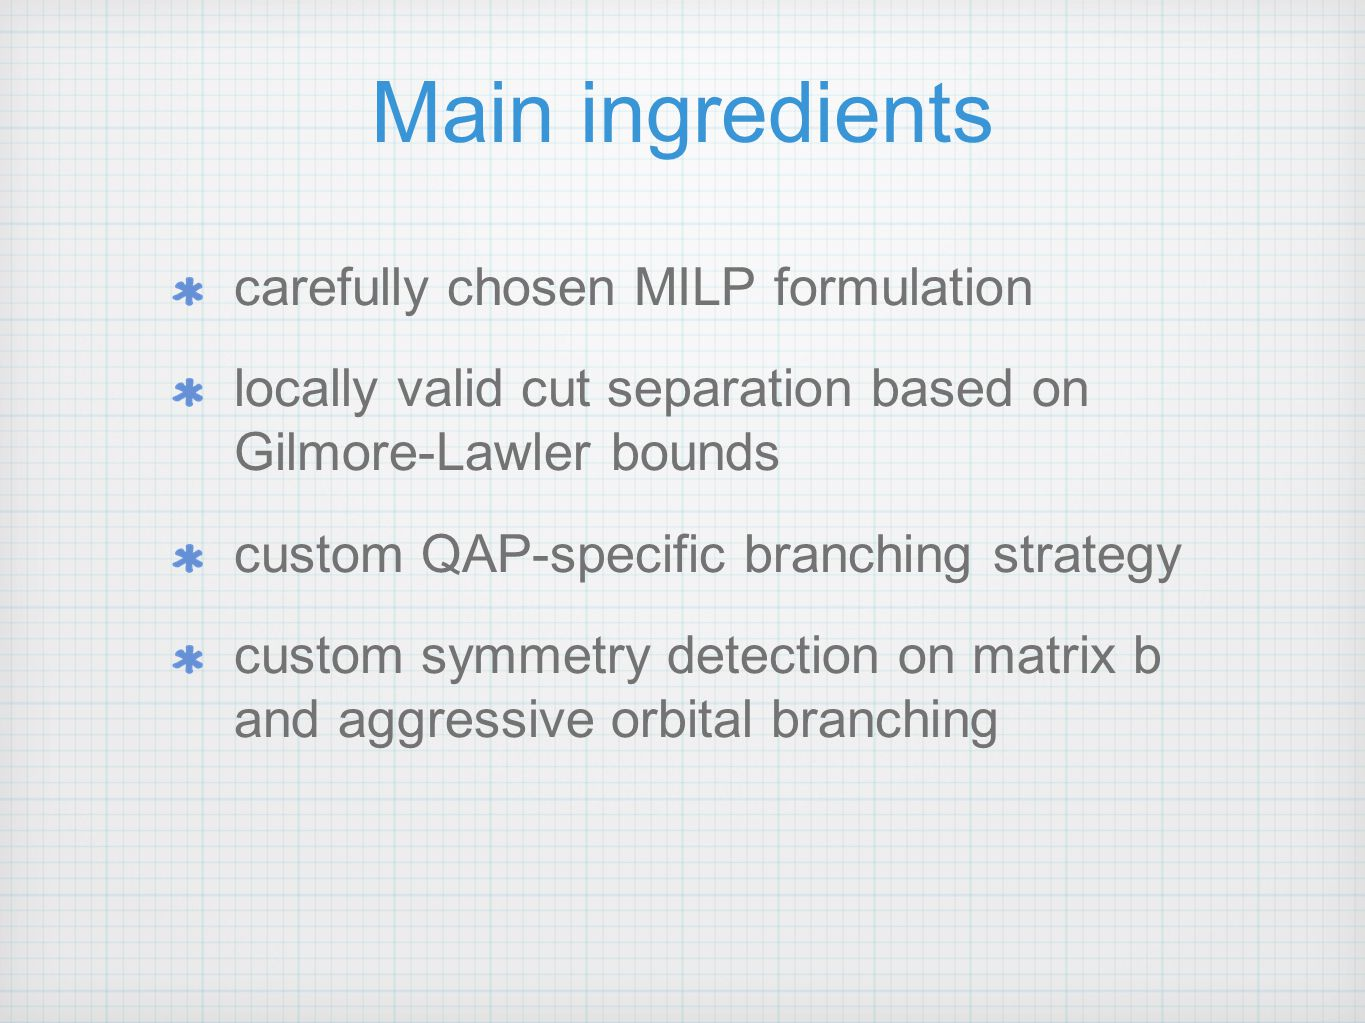 Main ingredients carefully chosen MILP formulation locally valid cut separation based on Gilmore-Lawler bounds custom QAP-specific branching strategy custom symmetry detection on matrix b and aggressive orbital branching